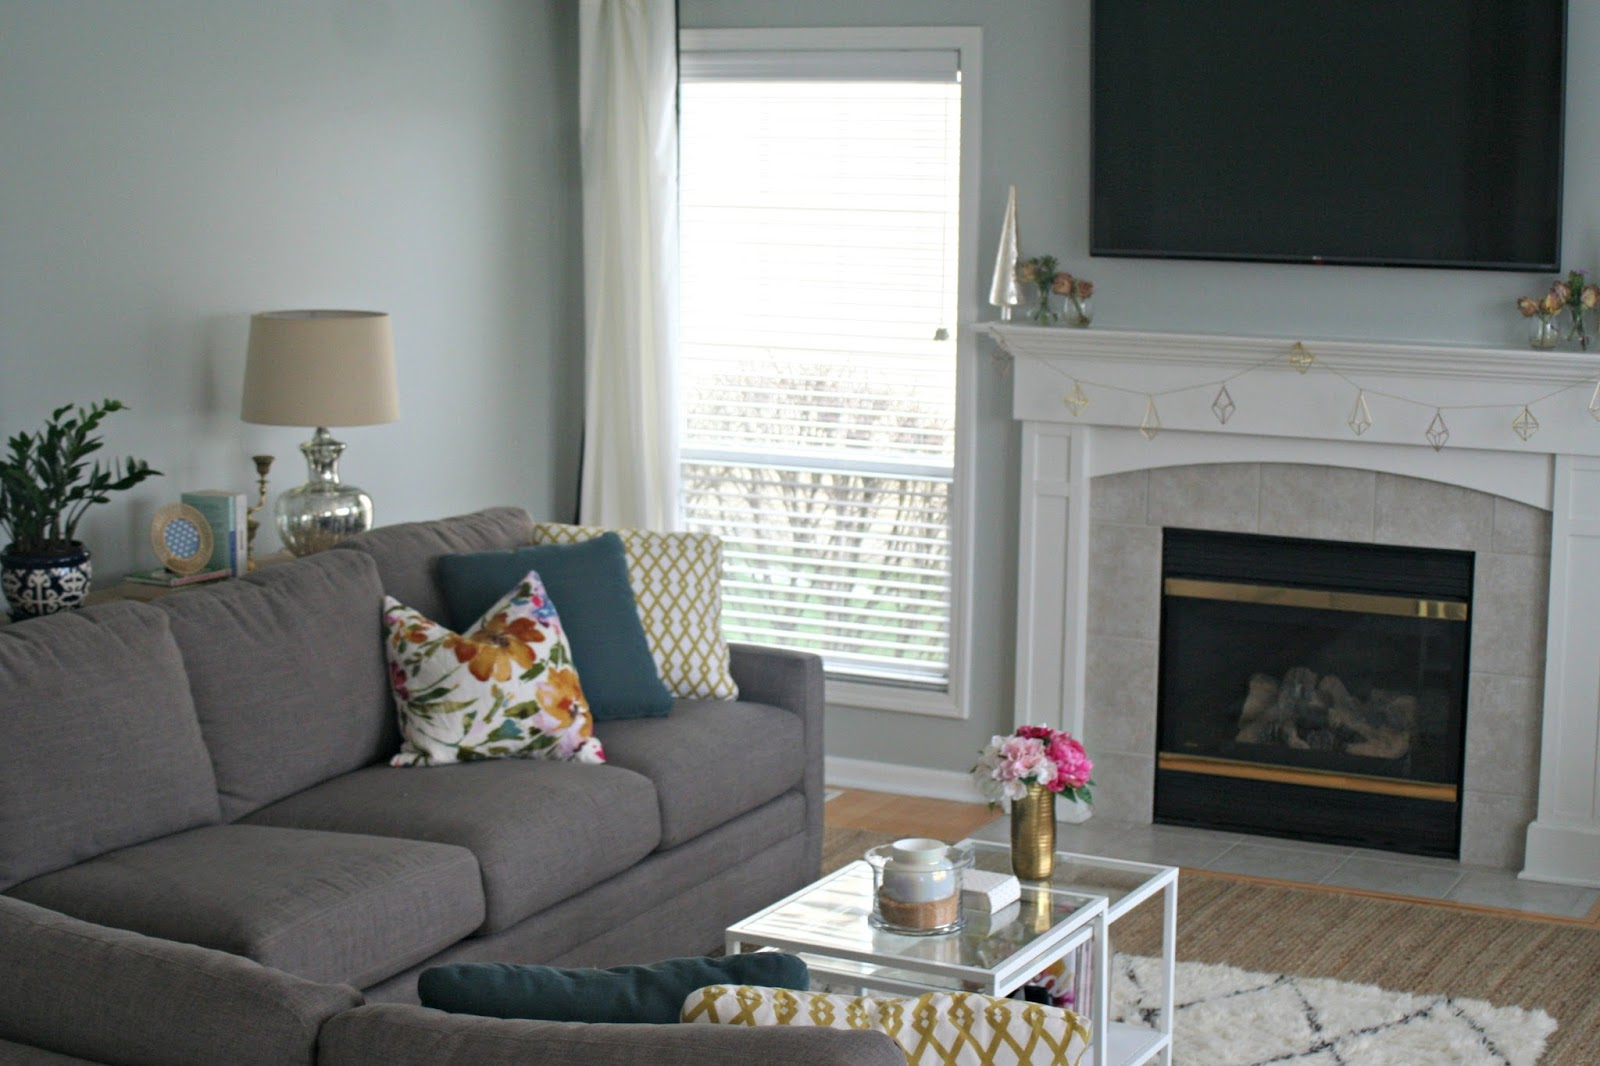 Chic And Glam Home With Textures Patters In Sherwin Williams Silver Strand